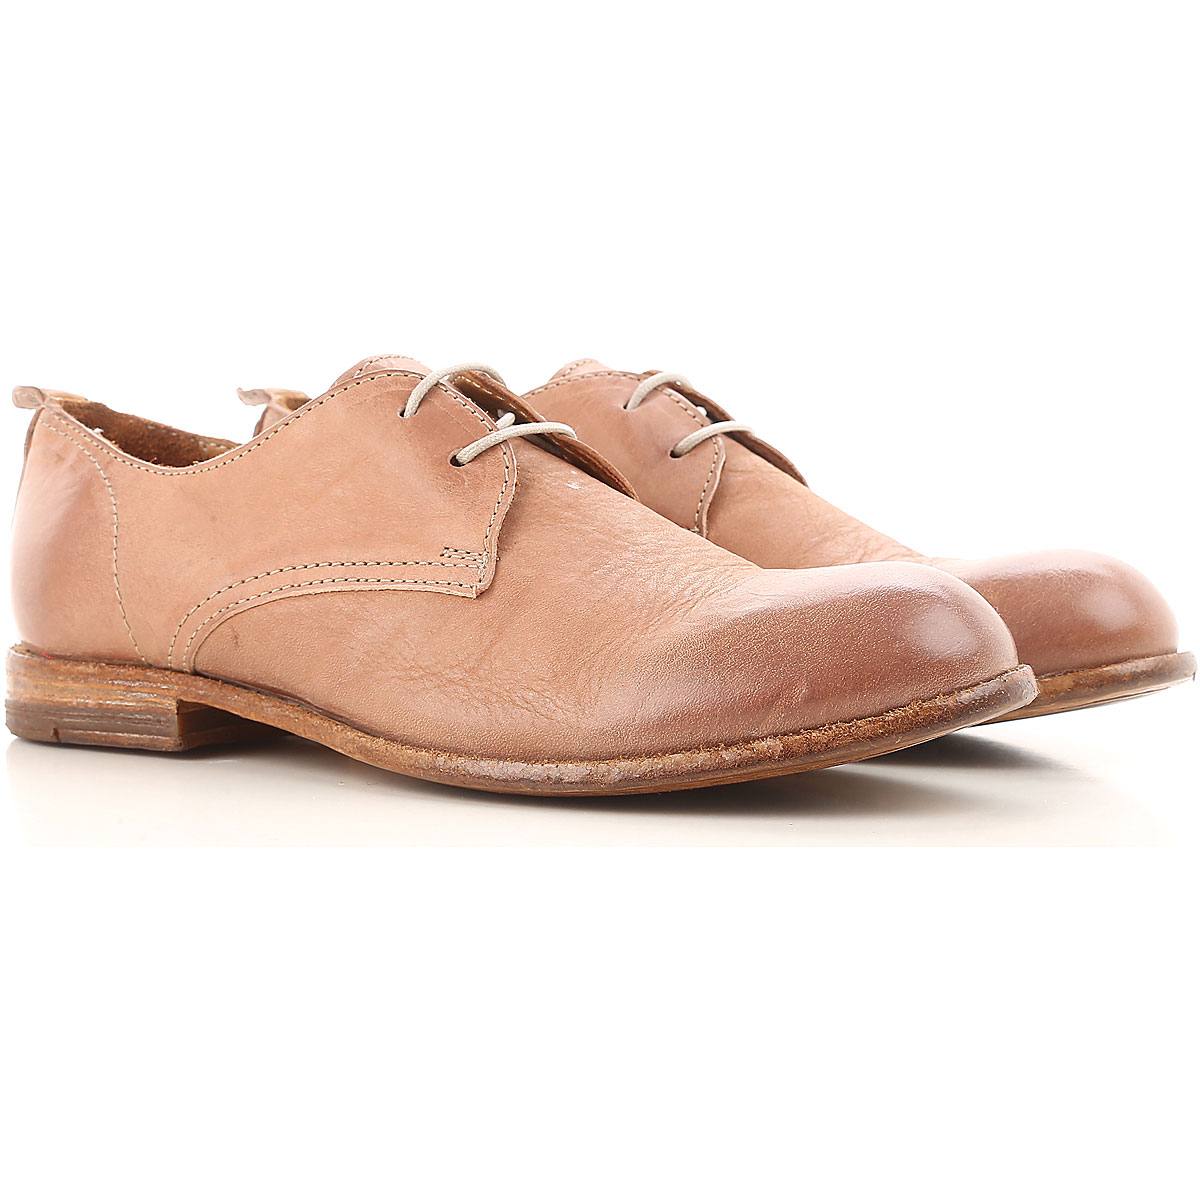 Image of Moma Womens Shoes, Old Pink, Leather, 2017, 10 6 7